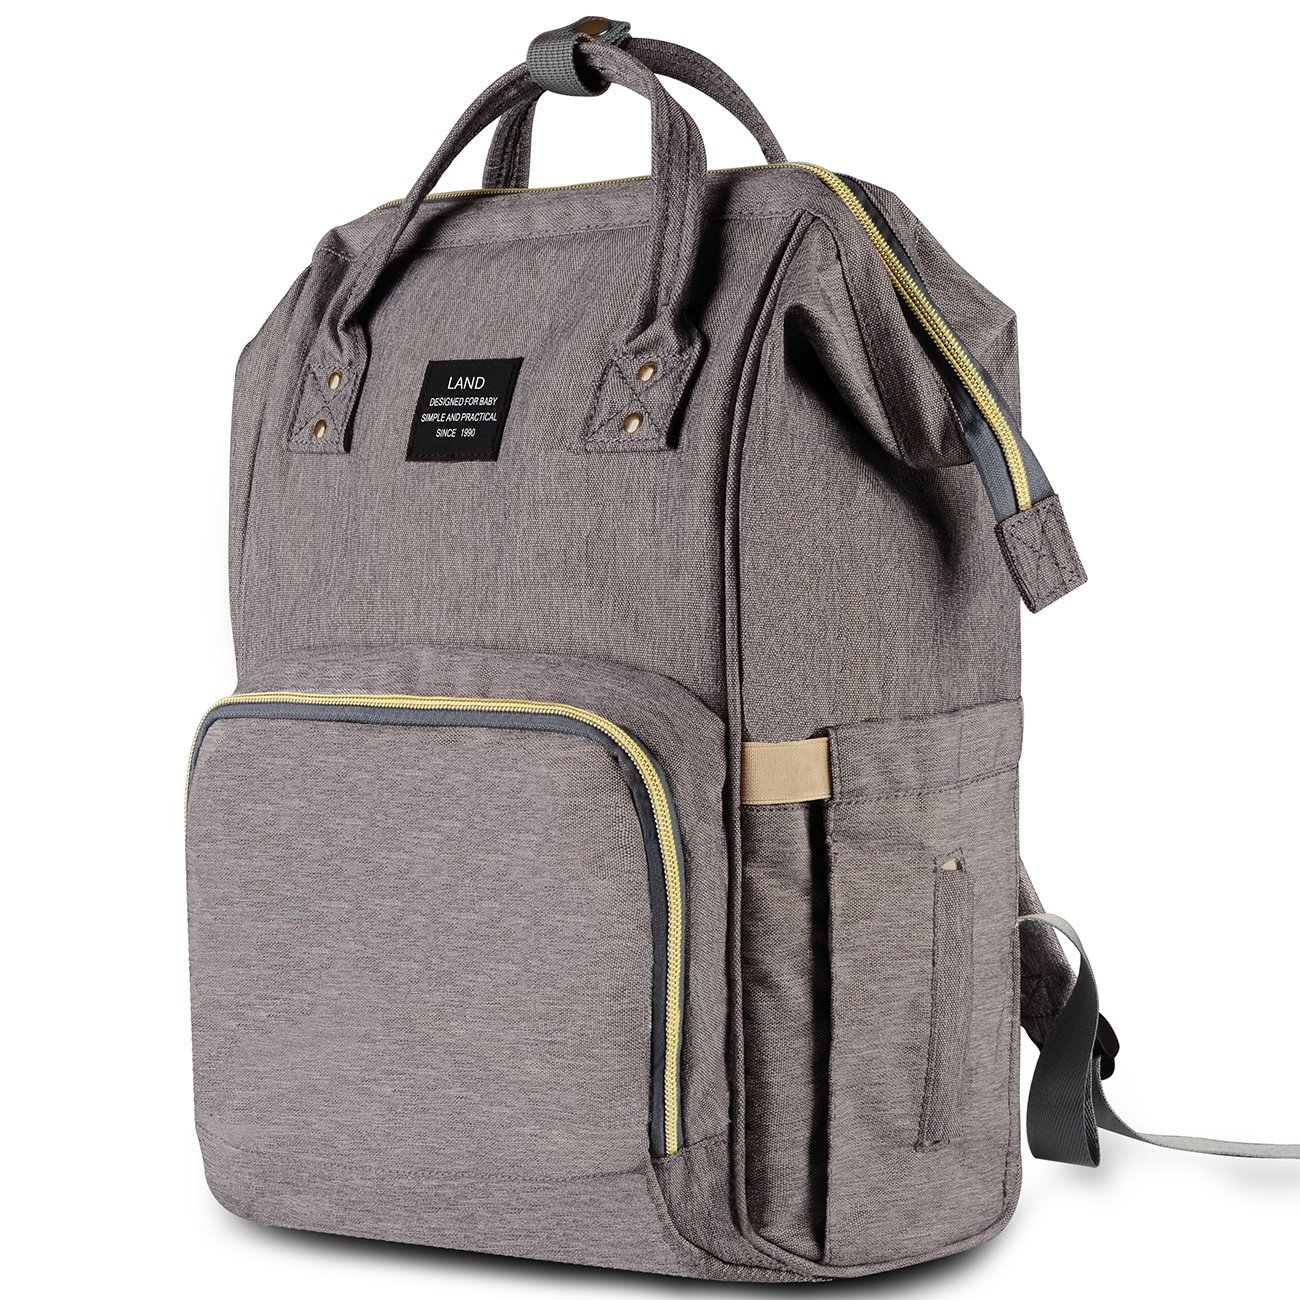 HaloVa Diaper Bag Multi-Function Waterproof Travel Backpack Nappy Bags for Baby Care, Large Capacity, Stylish and Durable, Gray by HaloVa